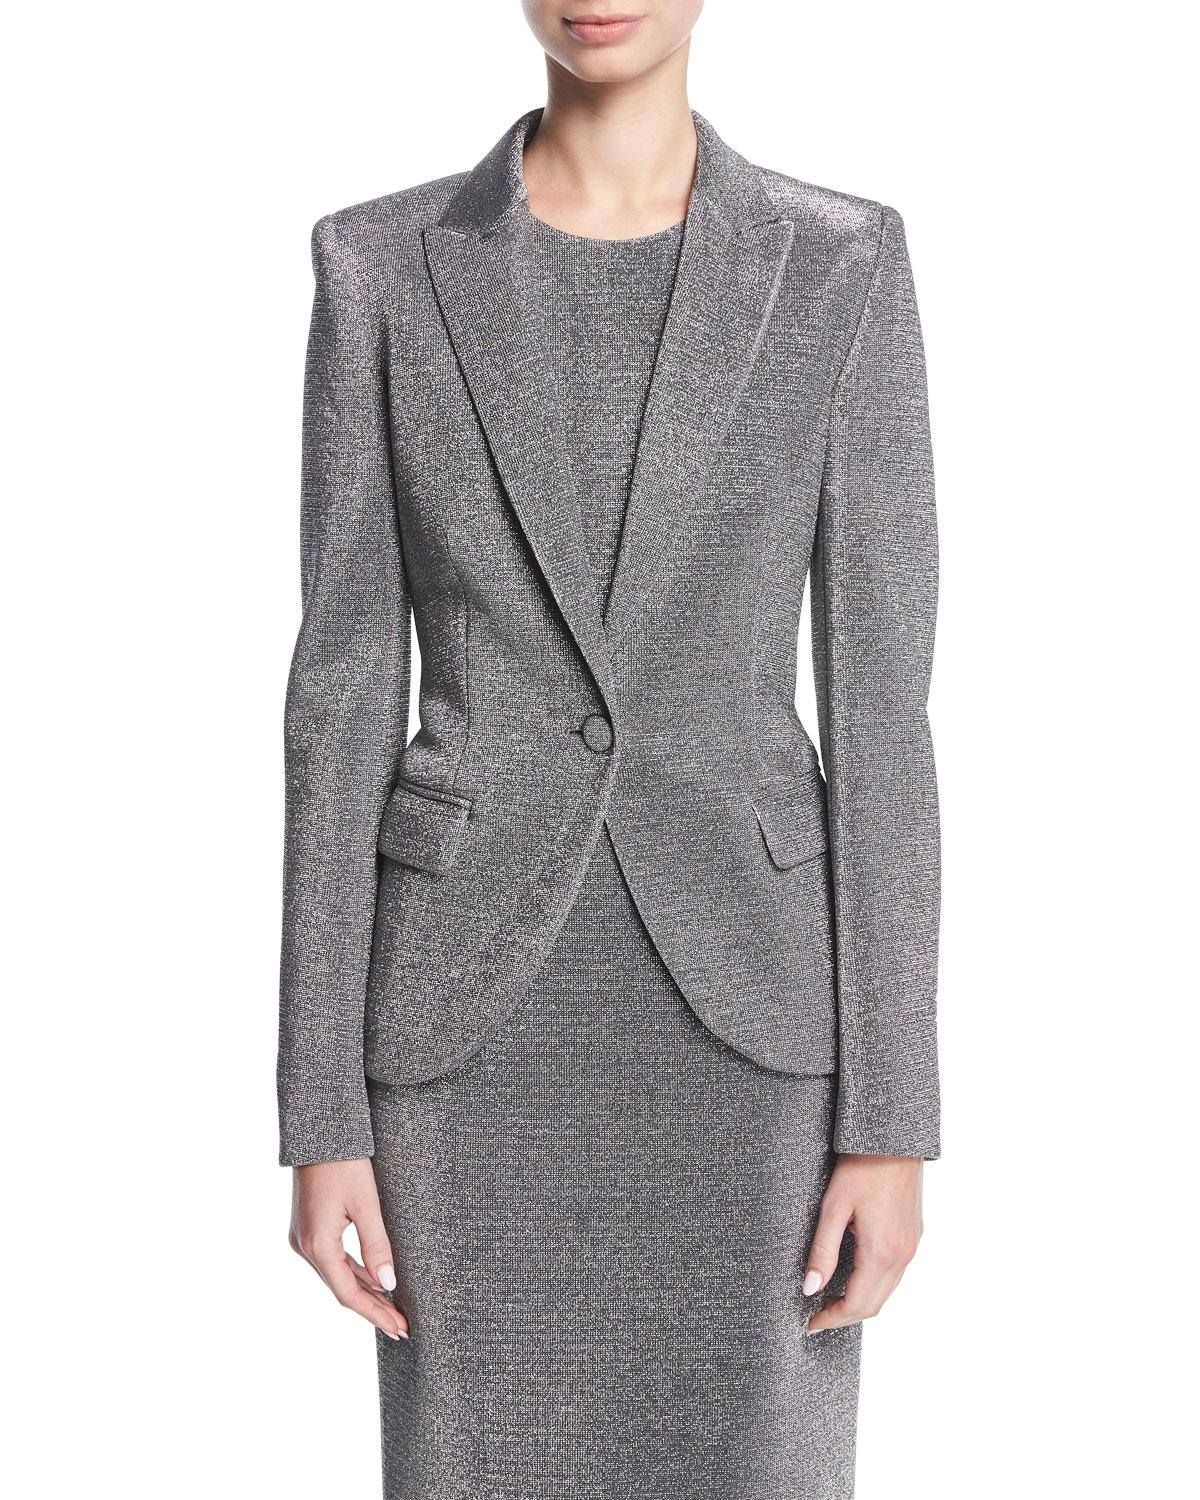 Escada Bouclé Notch-Lapel Blazer Outlet Prices Shipping Discount Sale Clearance 2018 New Really coVjlQ